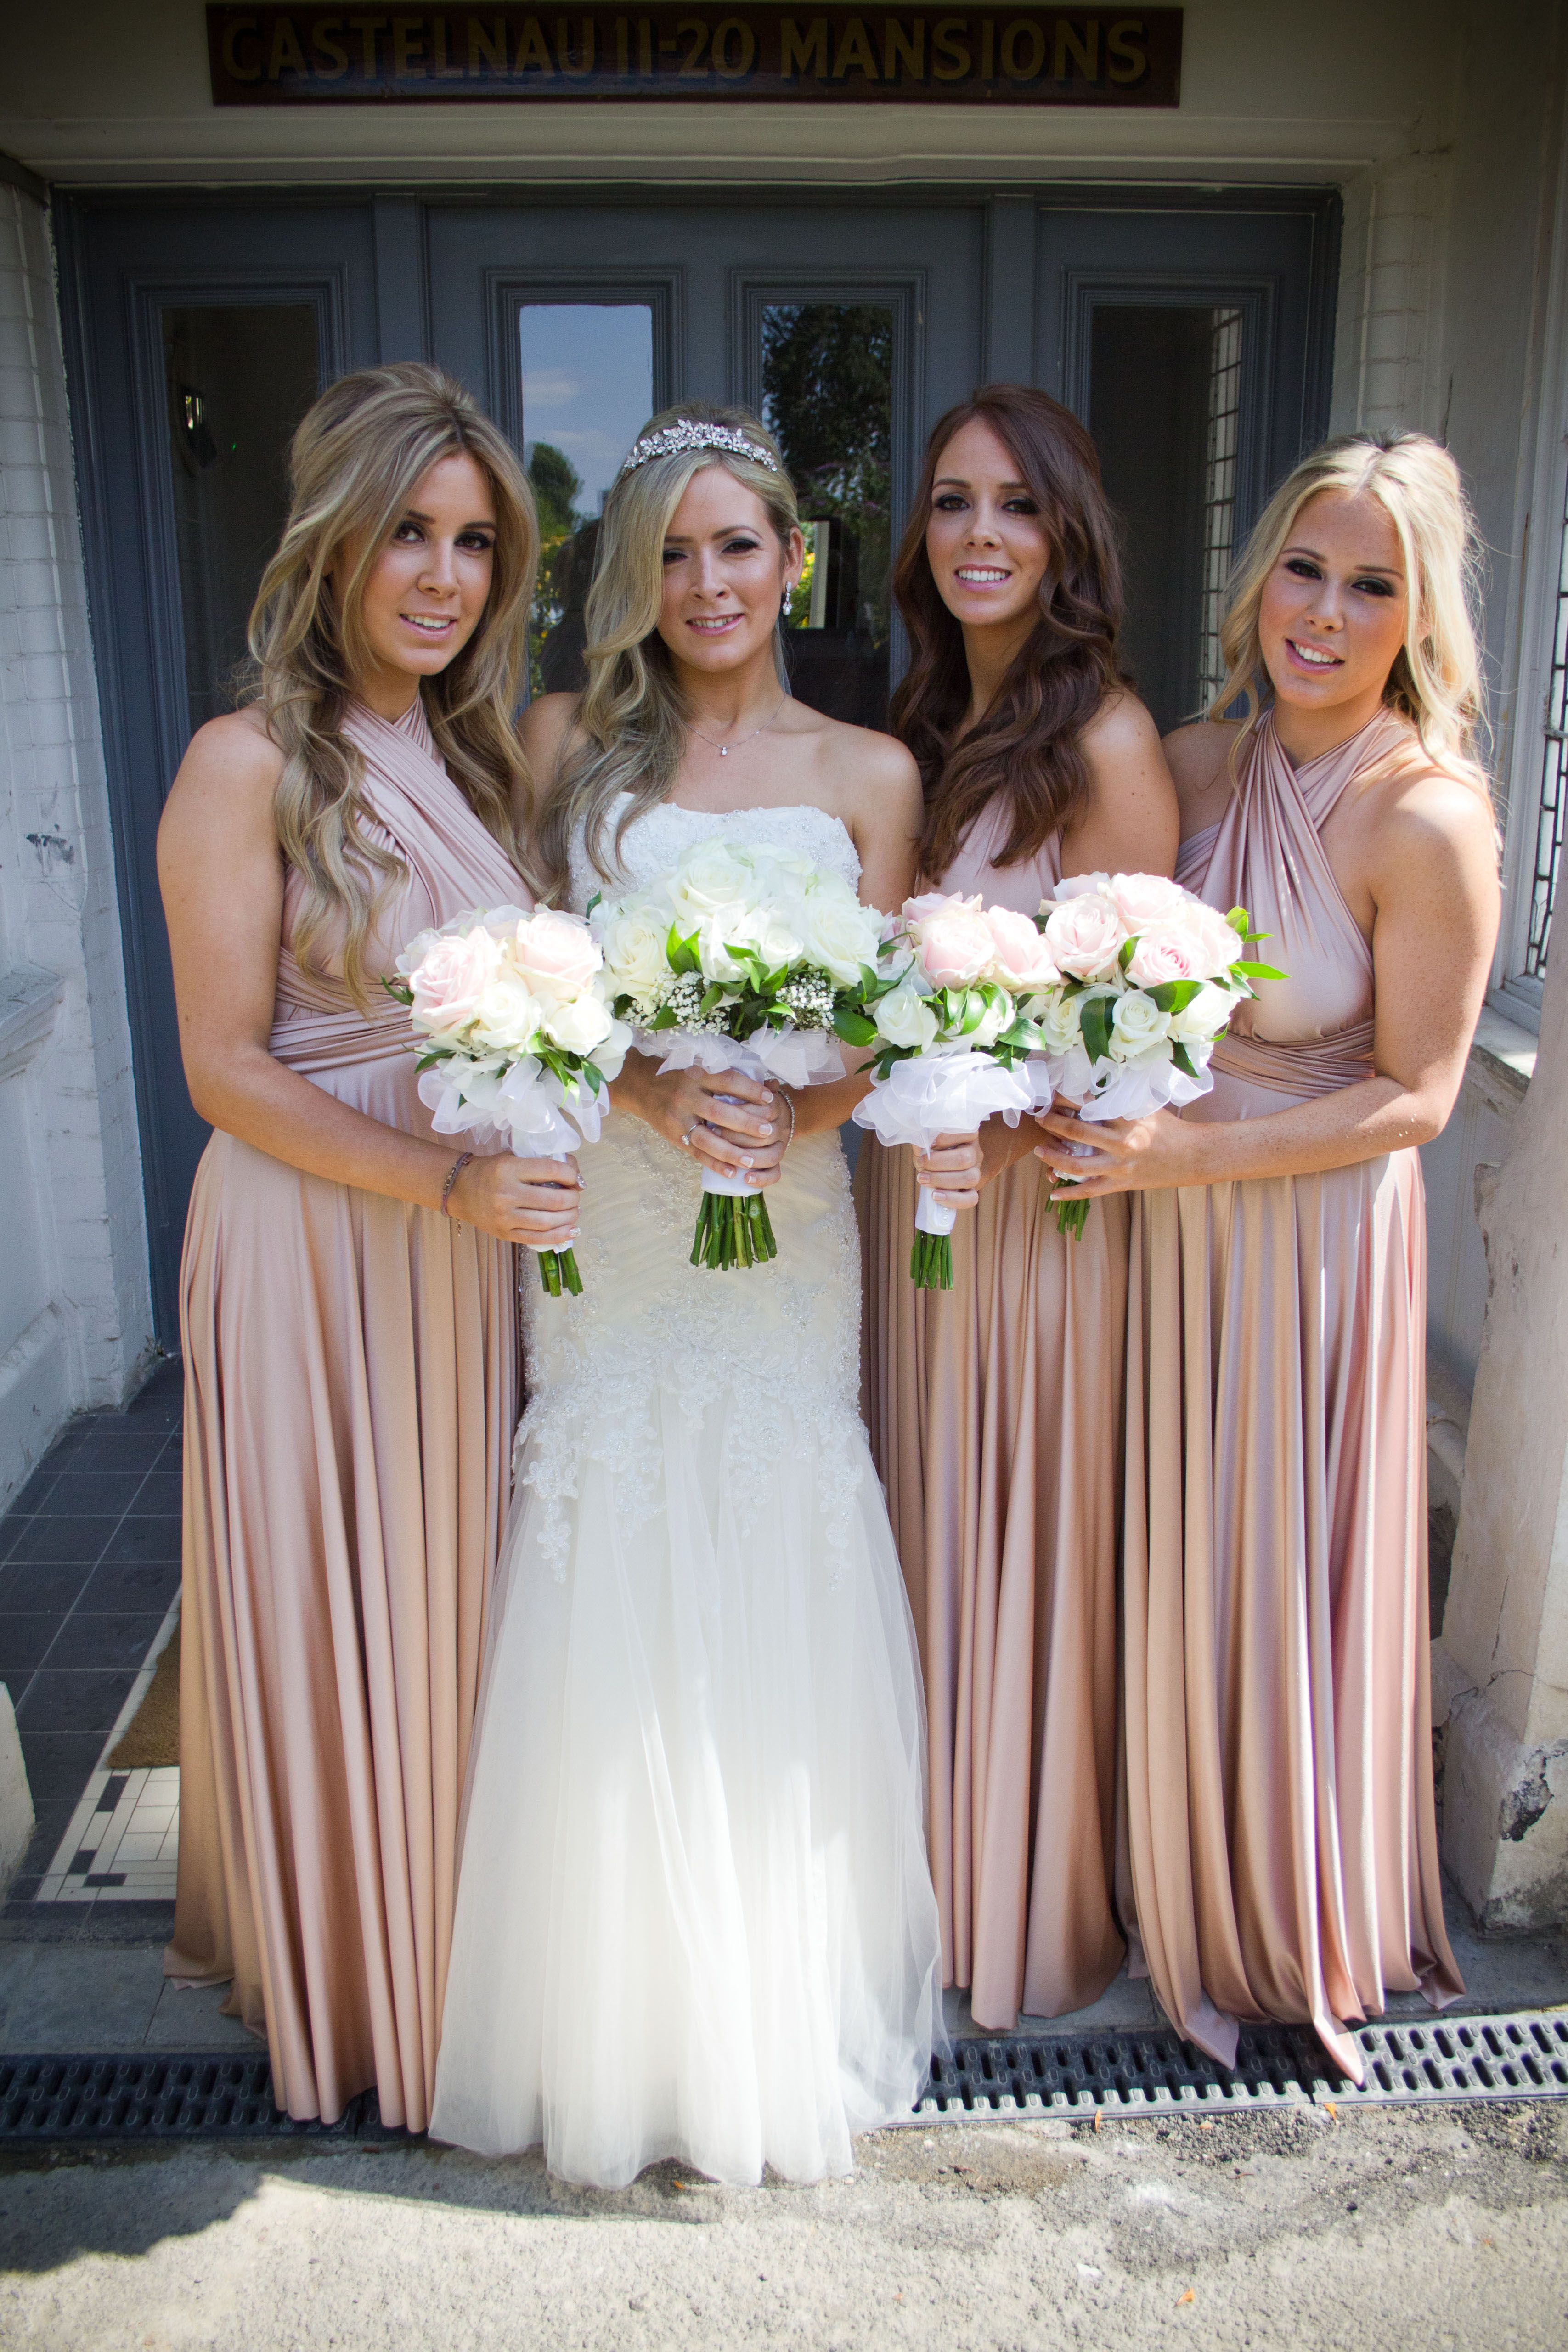 Two birds bridesmaids dress photo by david jenkins photography two birds bridesmaids dress photo by david jenkins photography 100 layer cake wedding inspiration pinterest wedding weddings and bridal parties ombrellifo Image collections